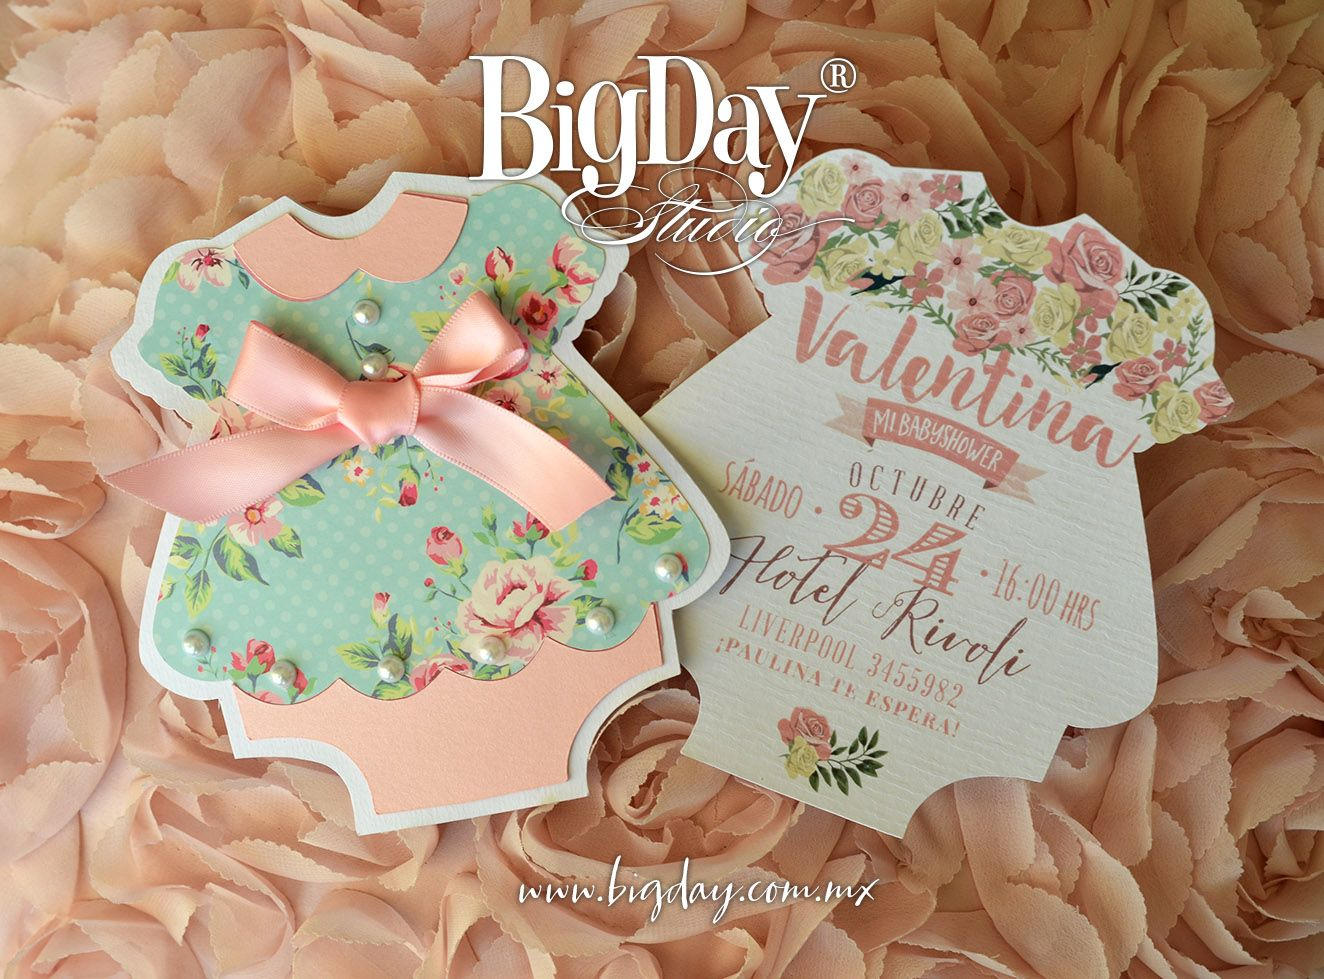 Baby Showers In Liverpool ~ Valentina y su tierna llegada invitación de baby shower